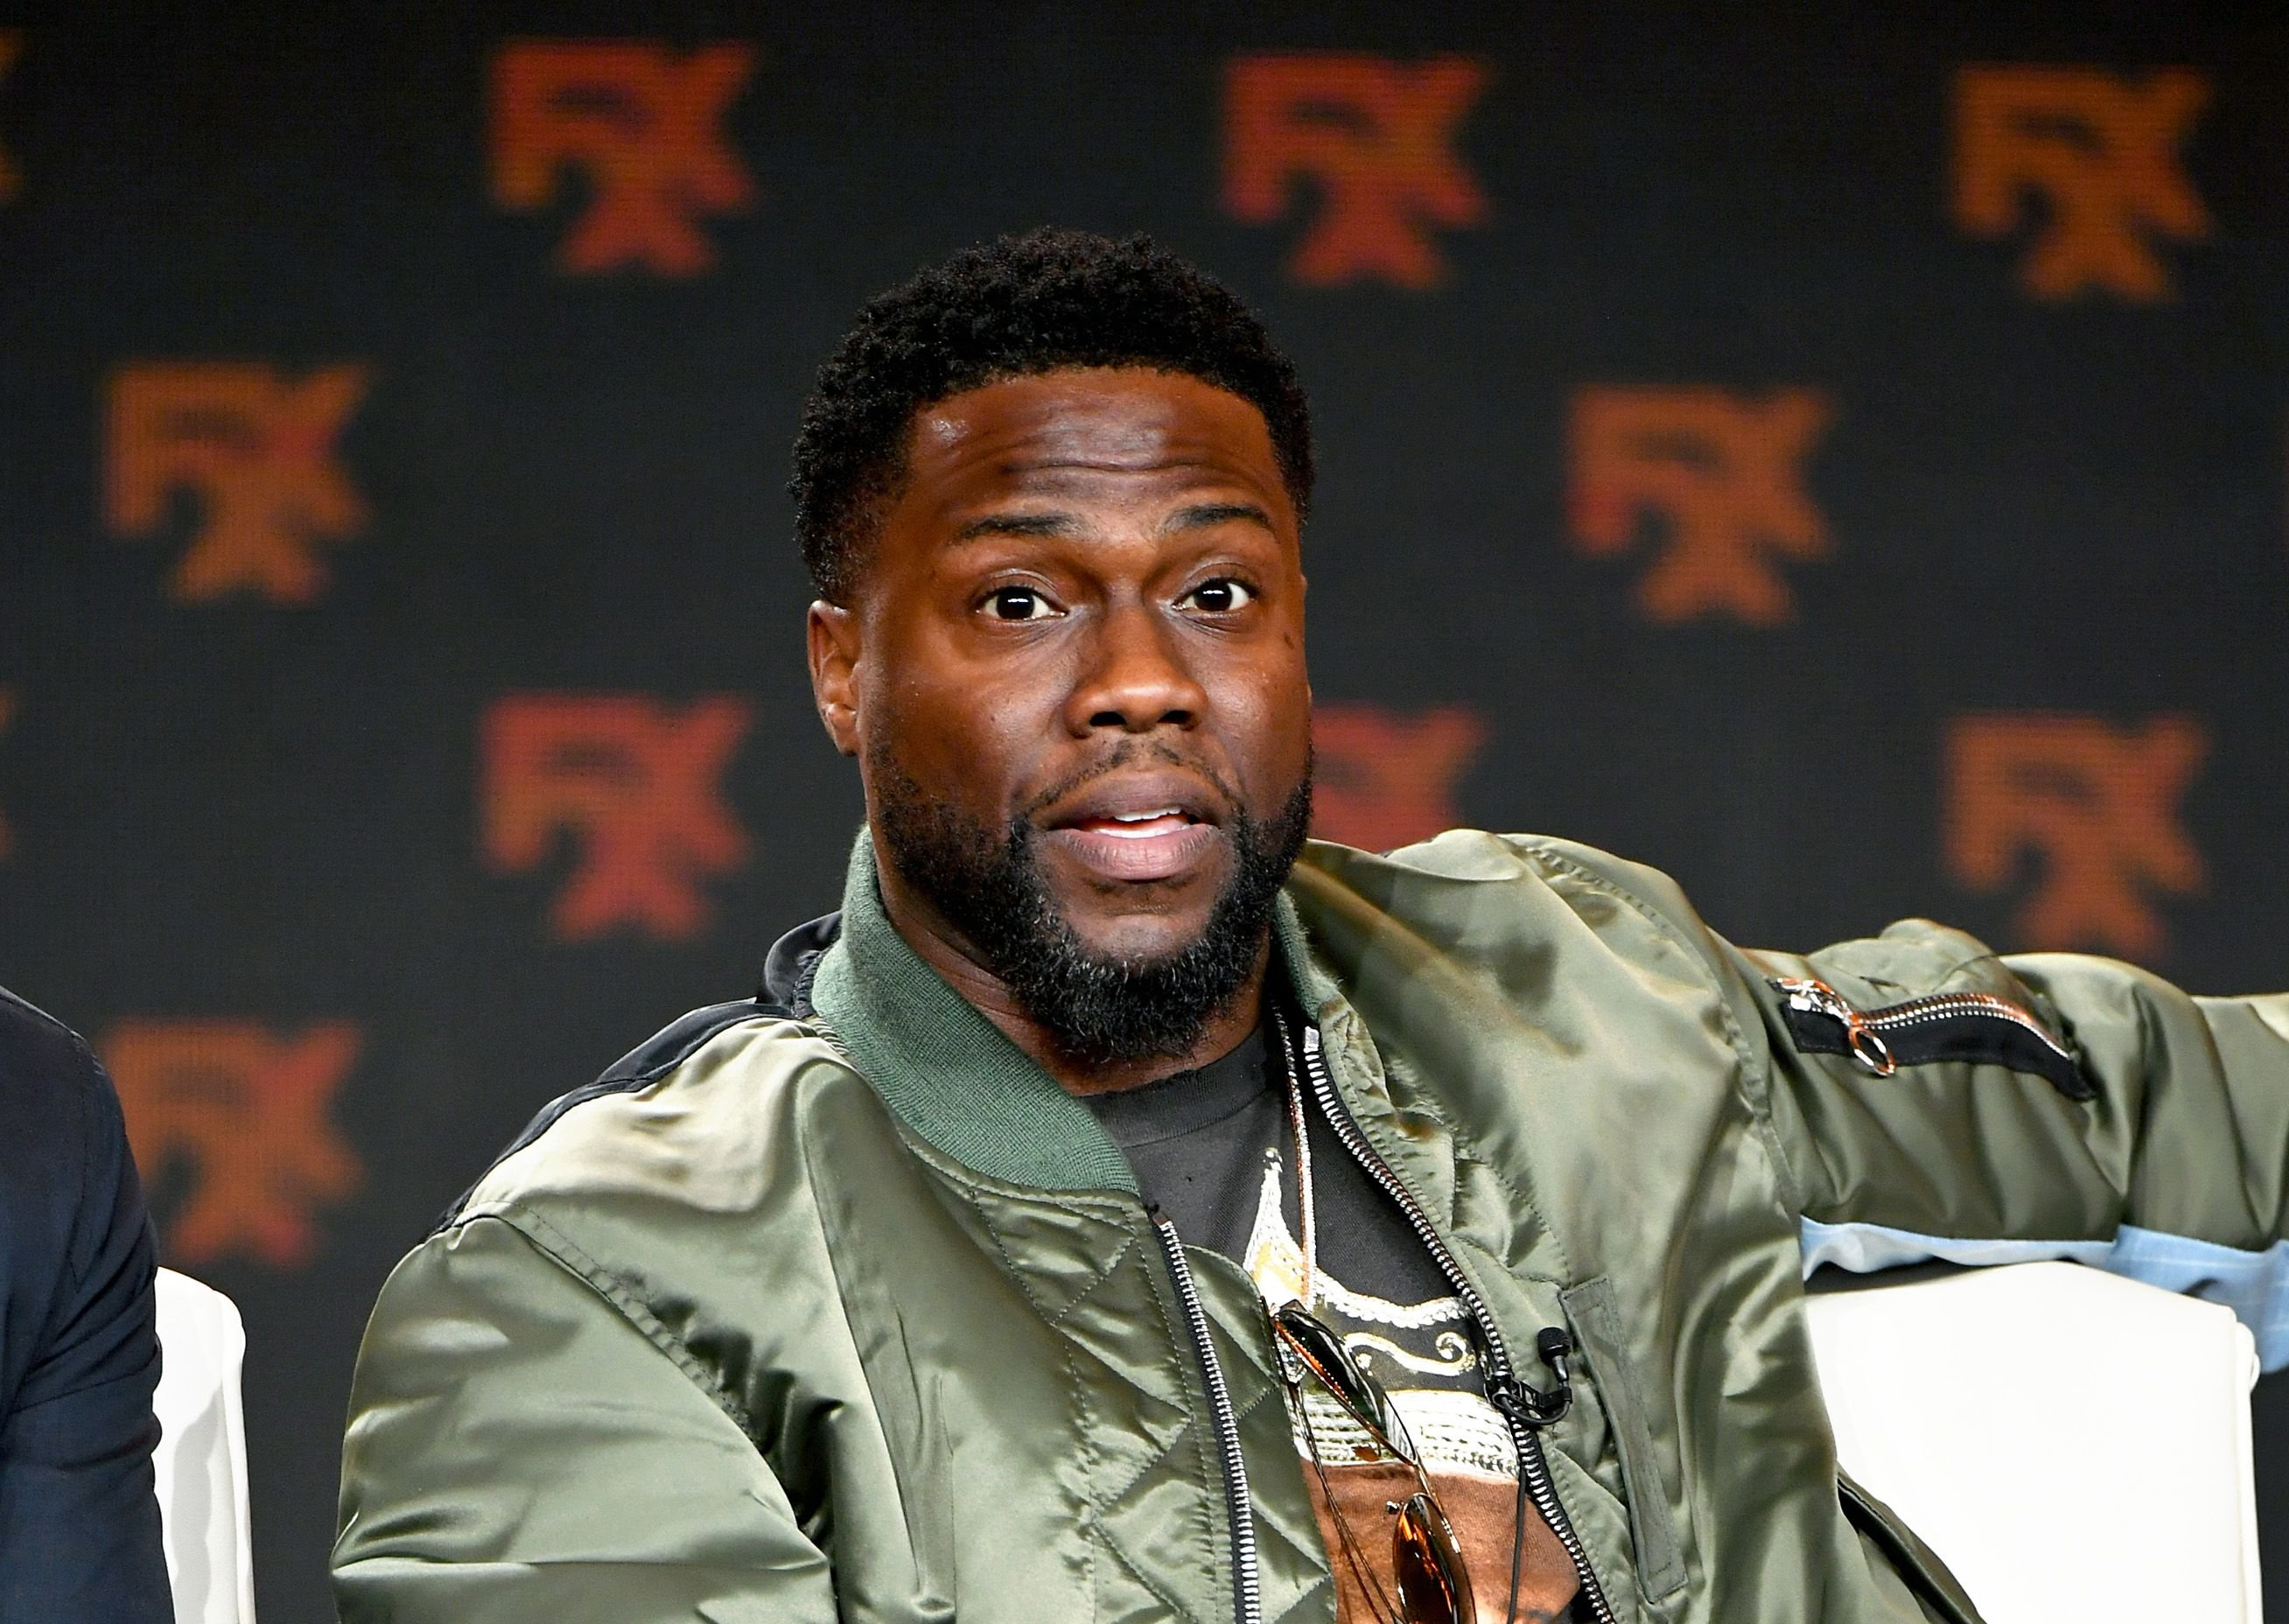 Kevin Hart speaks during the FX segment of the 2020 Winter TCA Tour at The Langham Huntington, Pasadena on January 09, 2020 in Pasadena, California. | Source: Getty Images